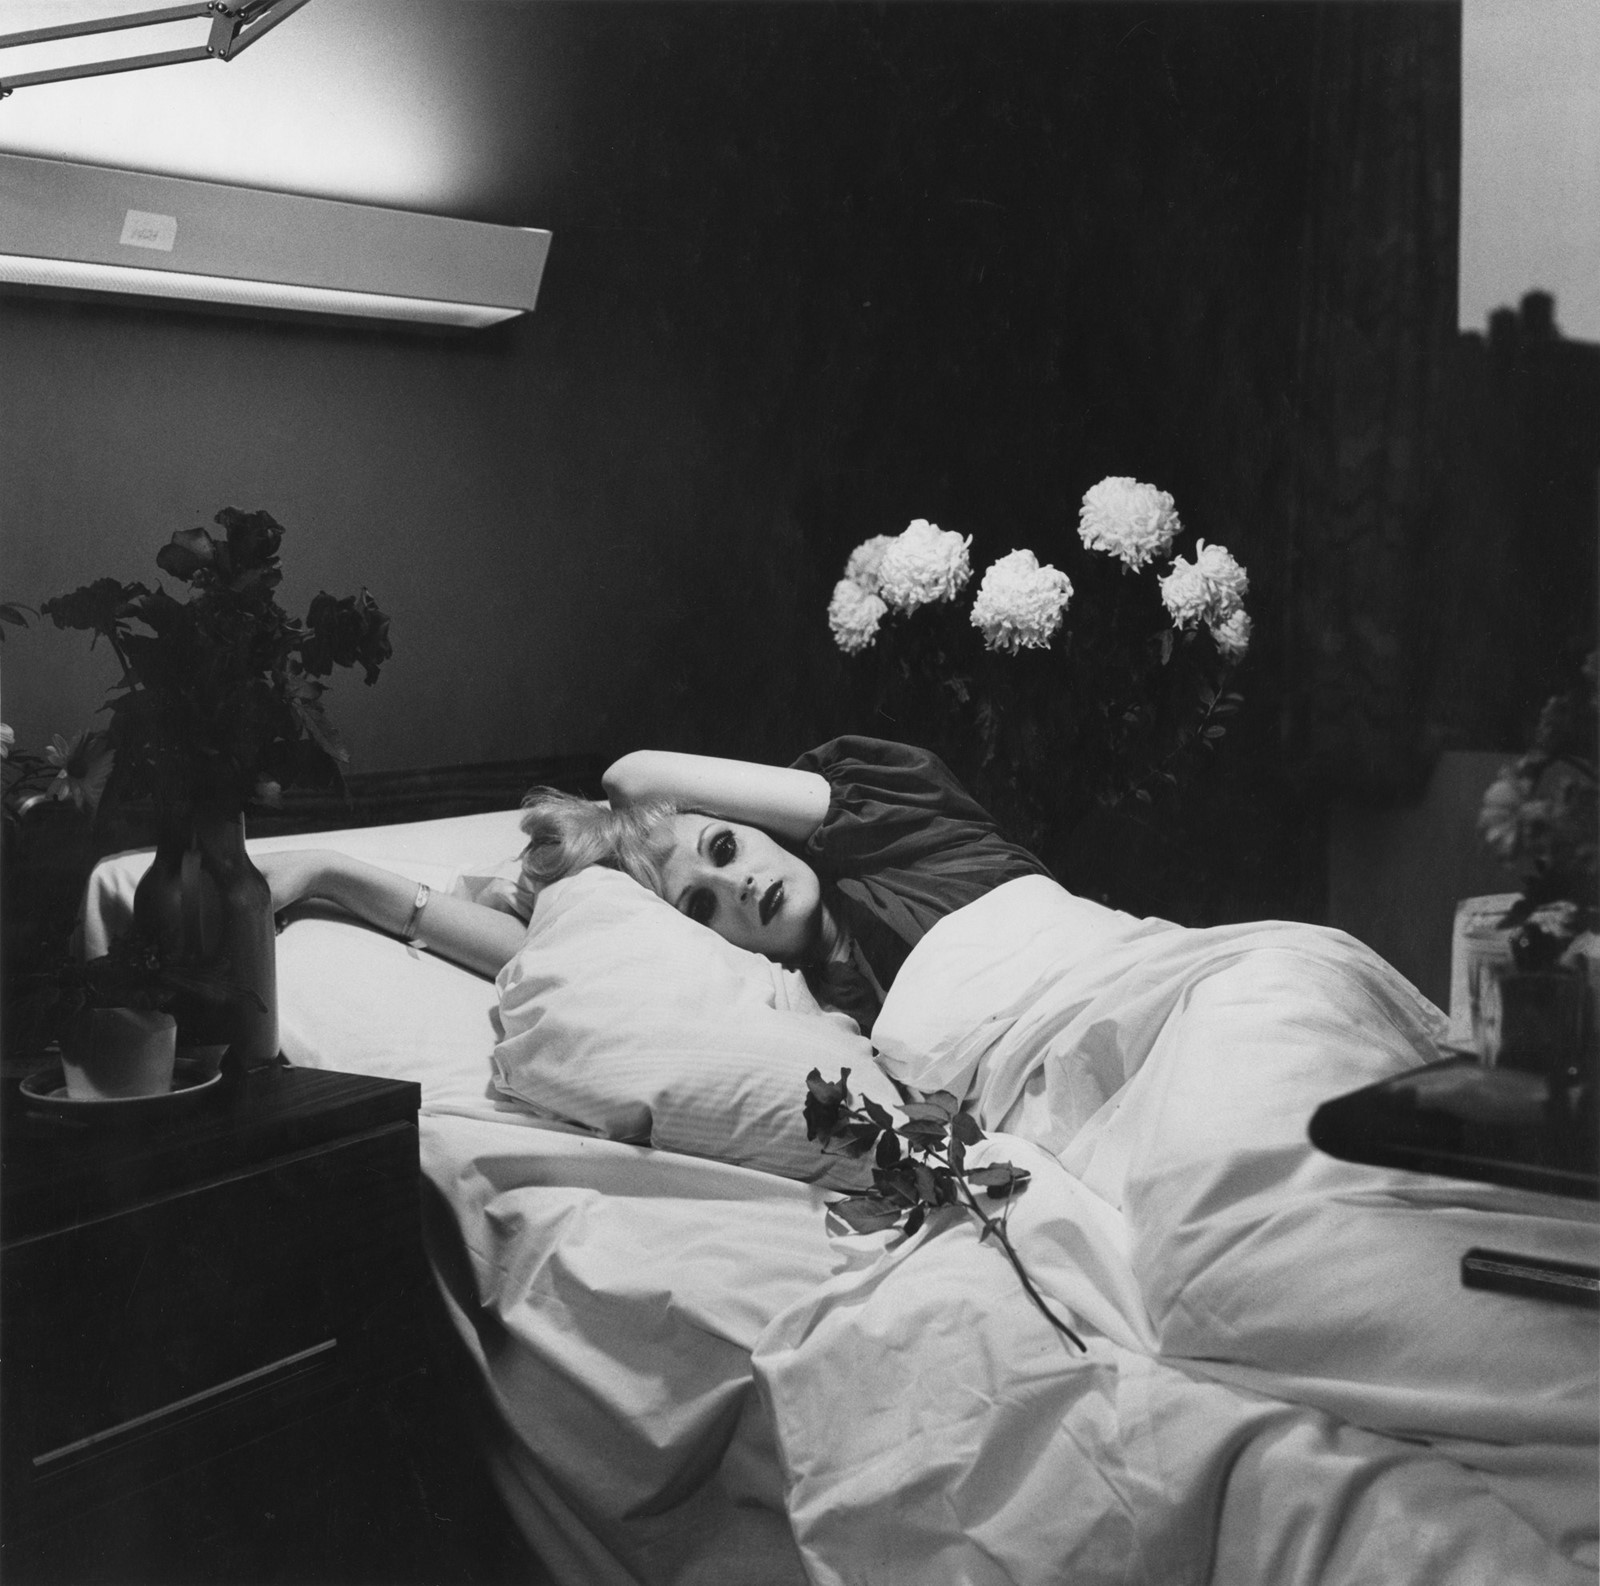 Peter Hujar, Candy Darling on her Deathbed, 1974